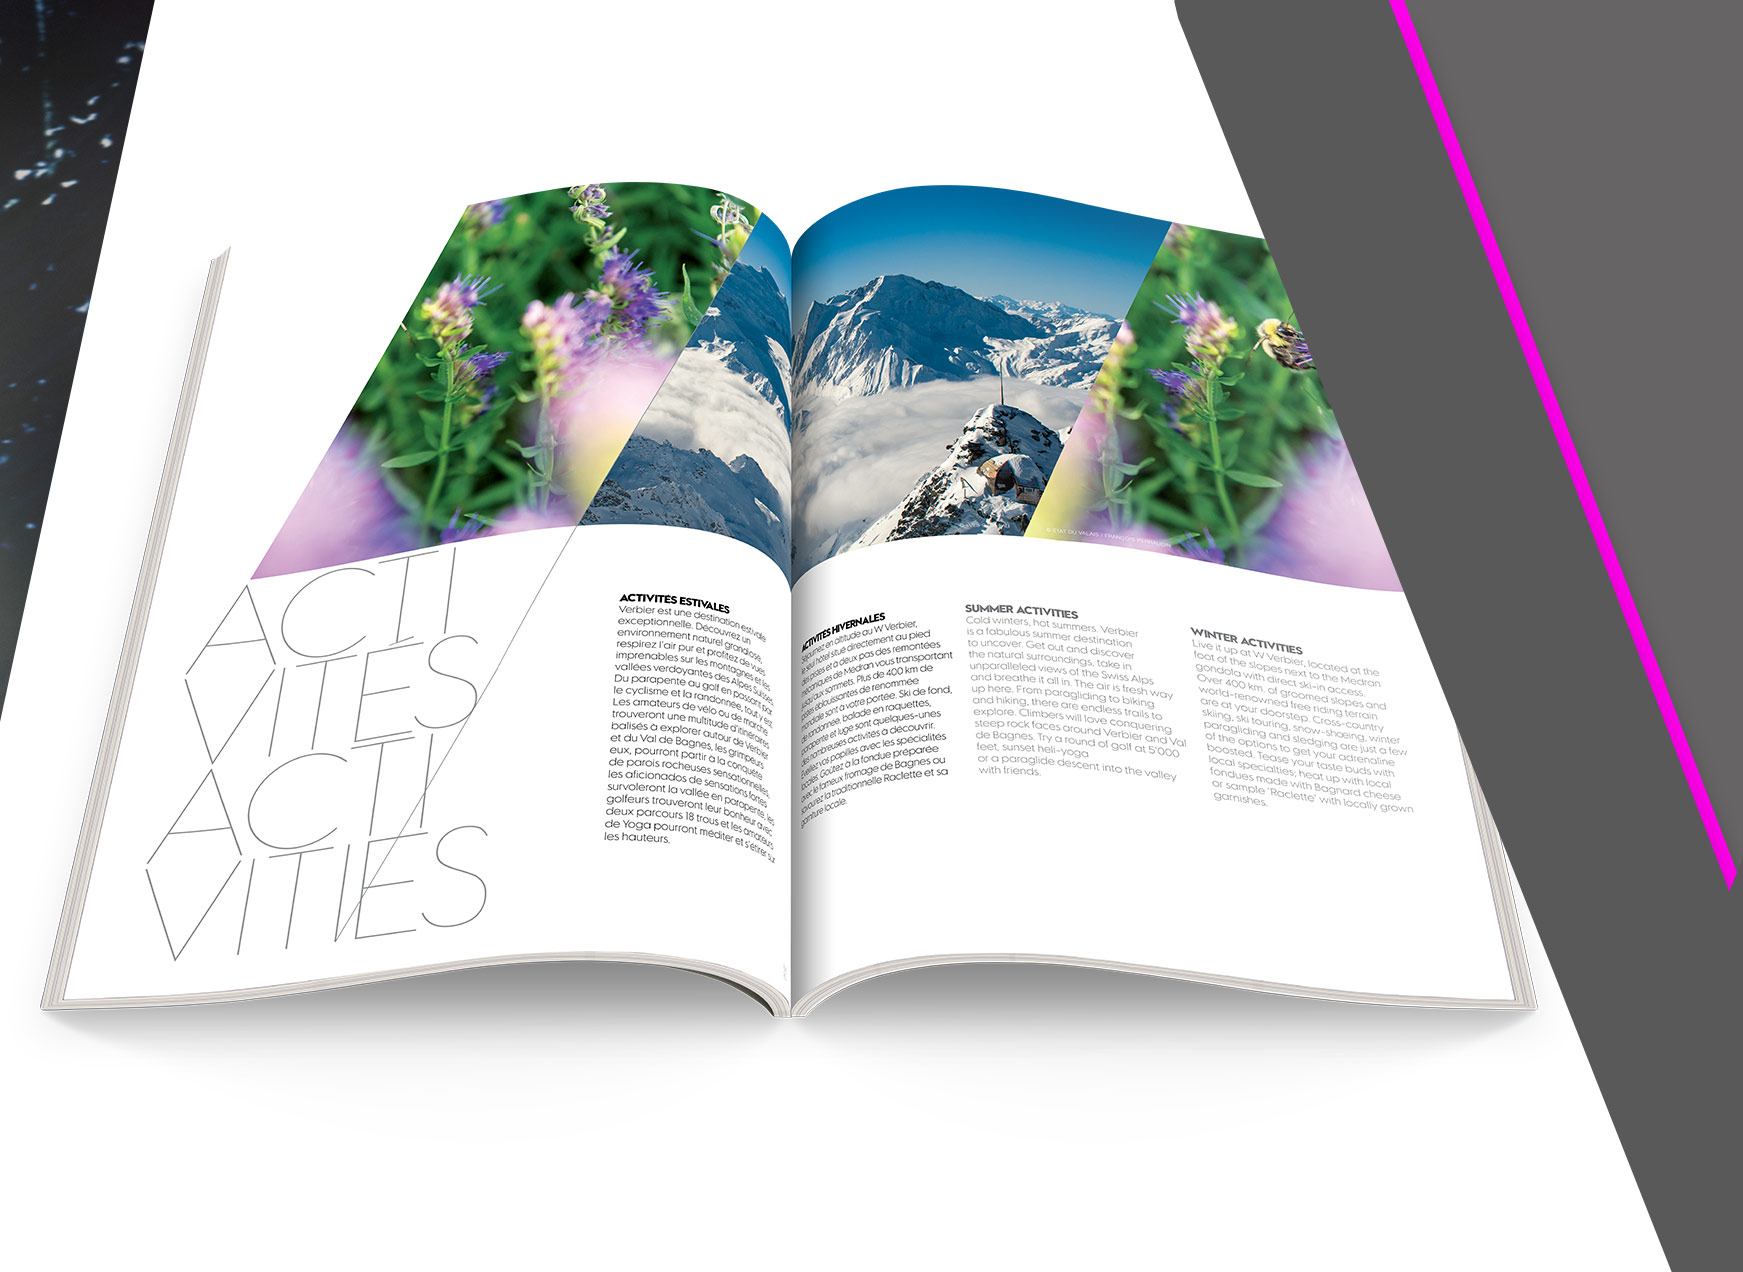 W Verbier Magazine- W Hotels - By D-facto lab